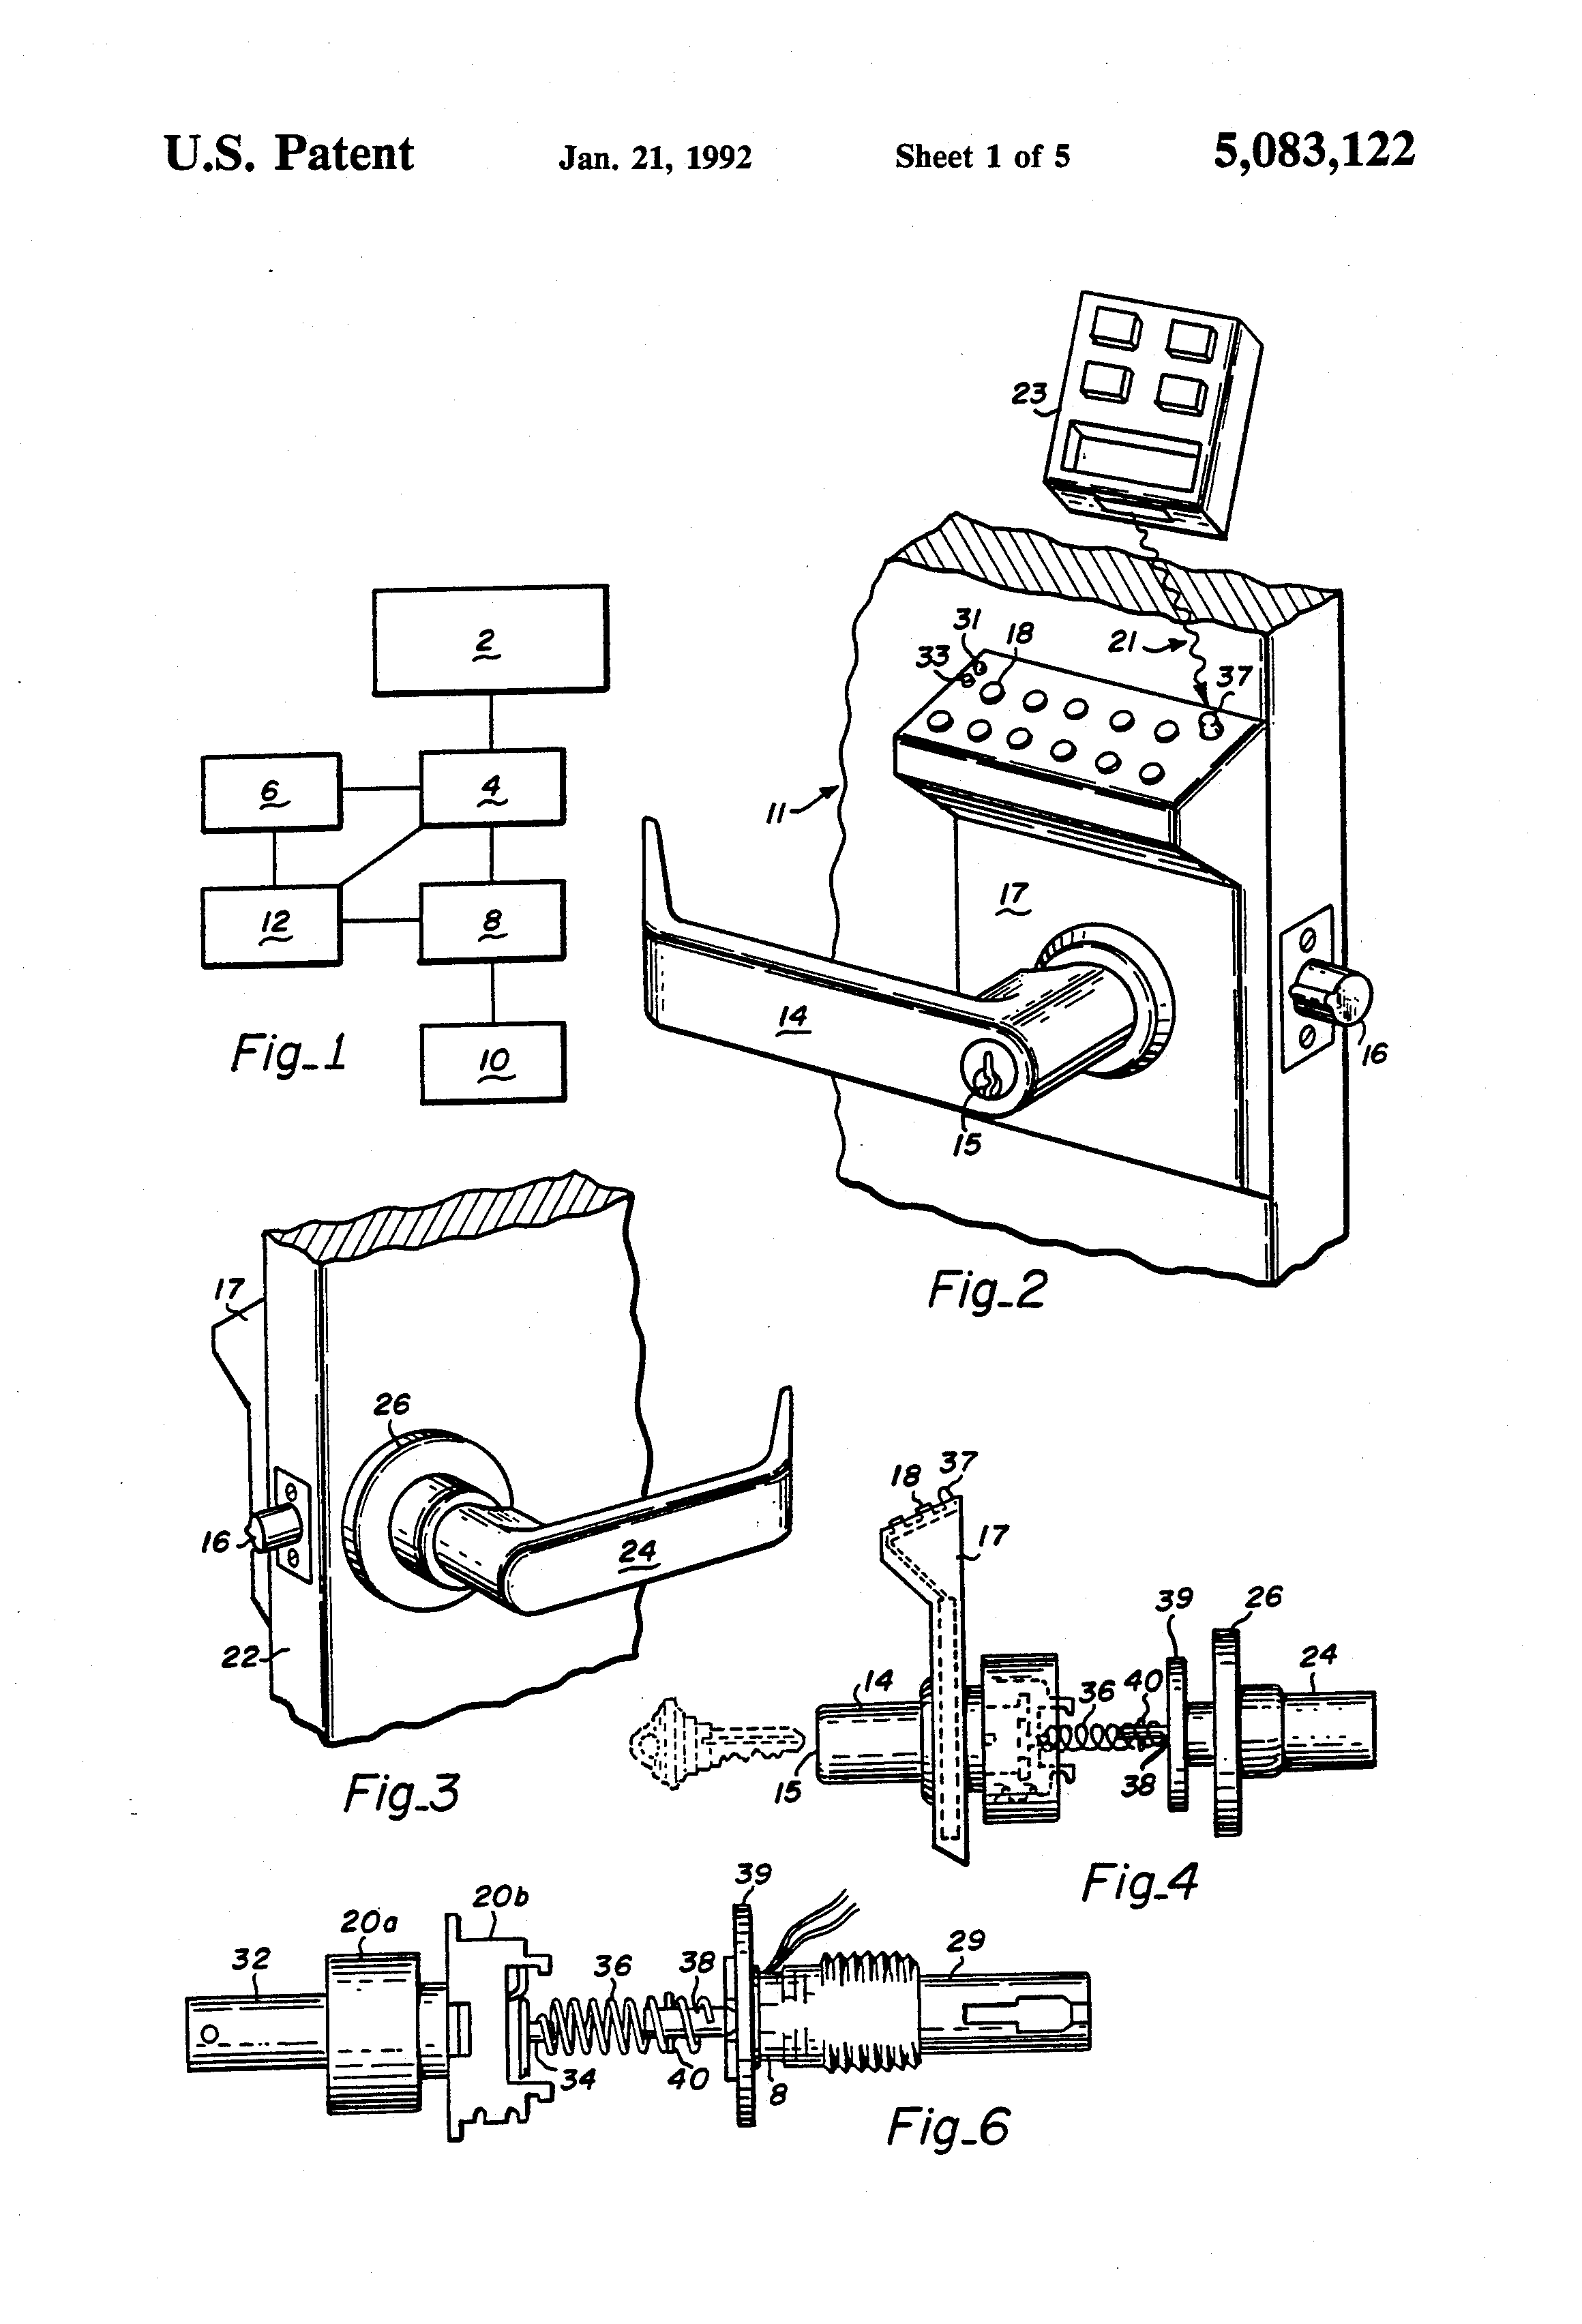 What information is typically provided in manuals for